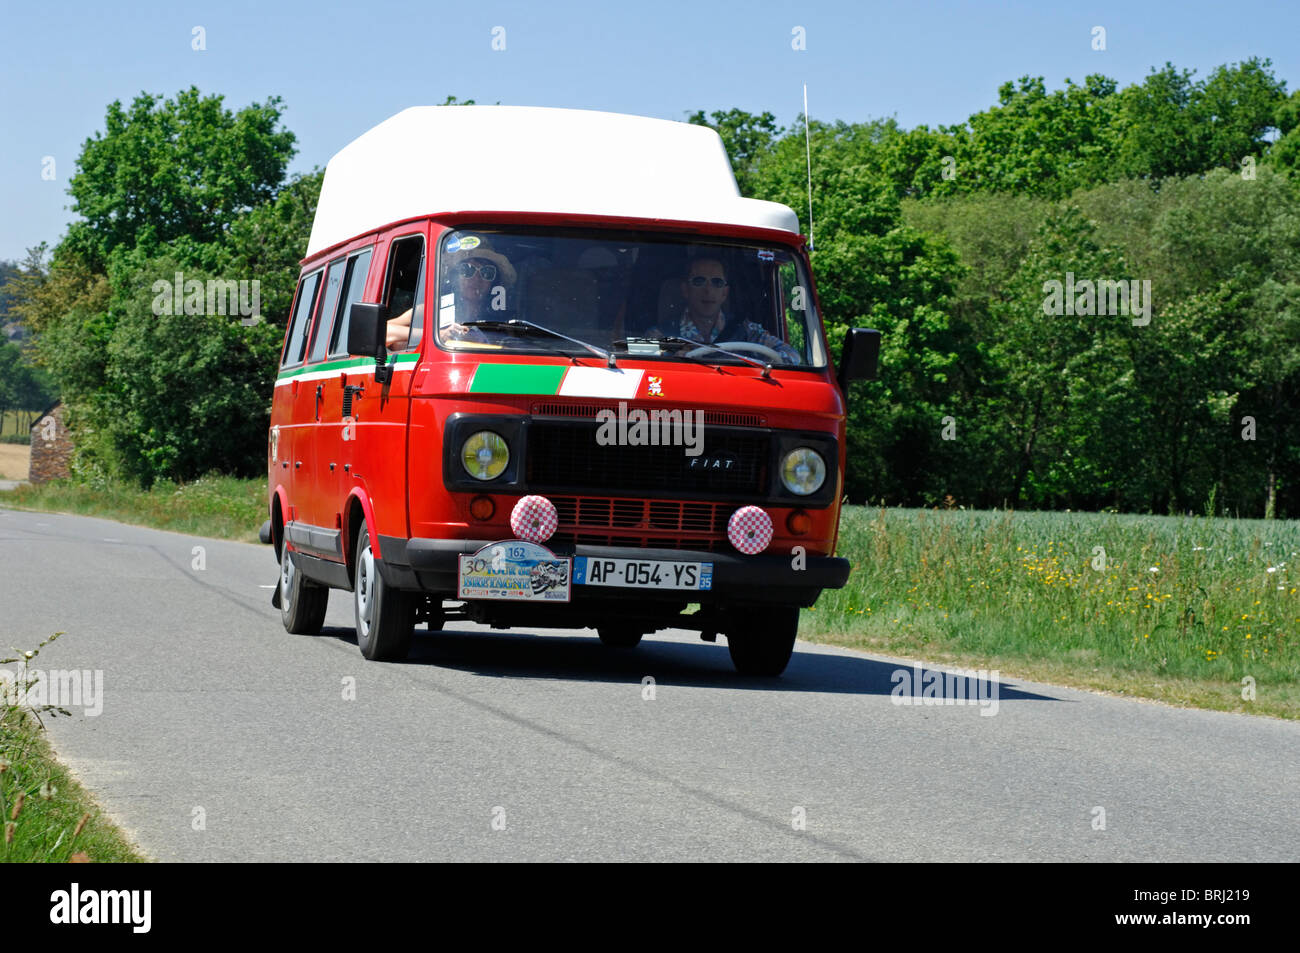 fiat 238 camping car 1982 in the tour de bretagne classic car rally stock photo royalty free. Black Bedroom Furniture Sets. Home Design Ideas